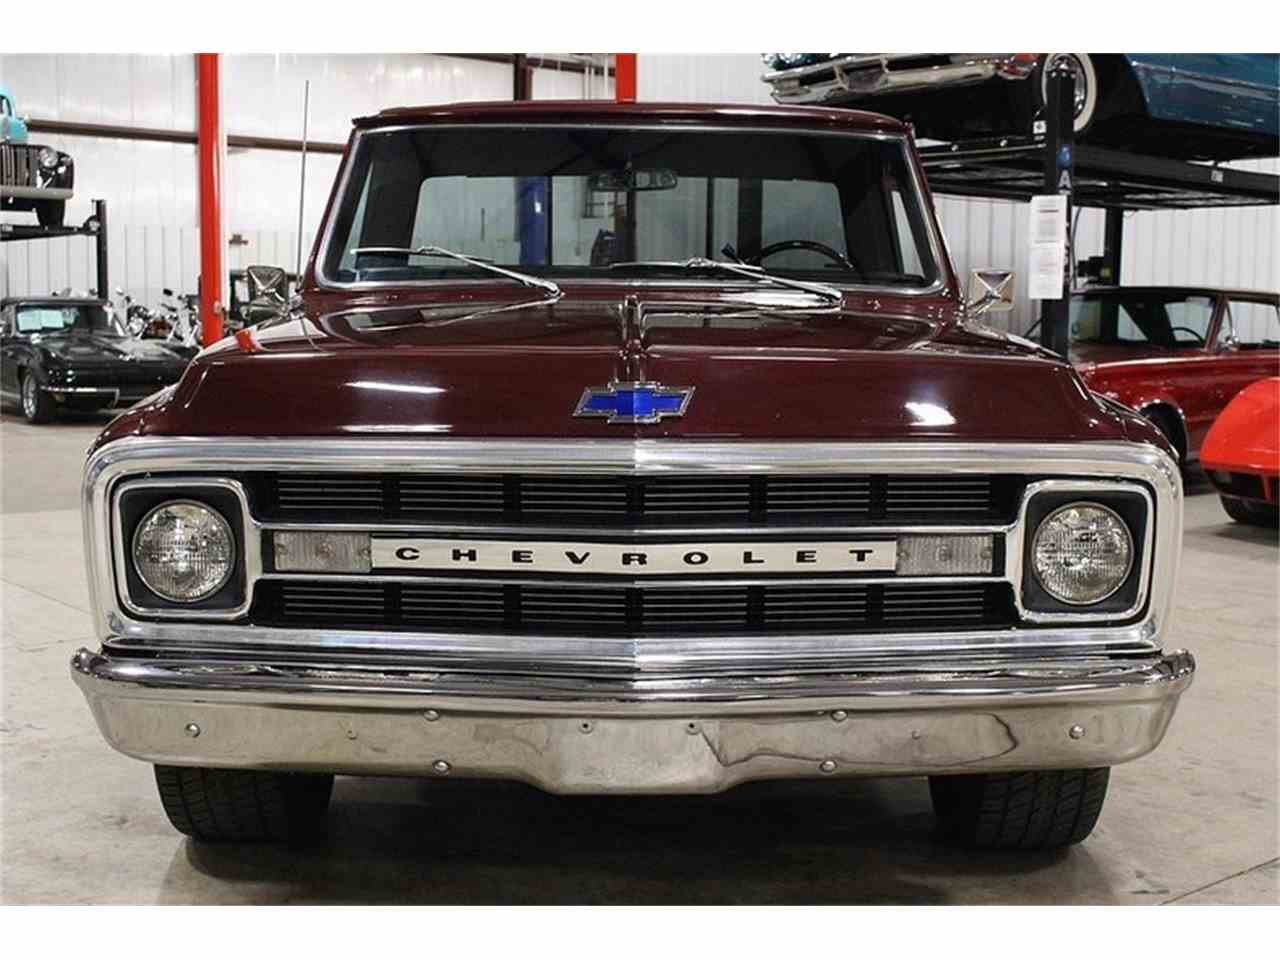 All Chevy 1969 chevrolet c10 for sale : 1969 Chevrolet C10 for Sale | ClassicCars.com | CC-1043874